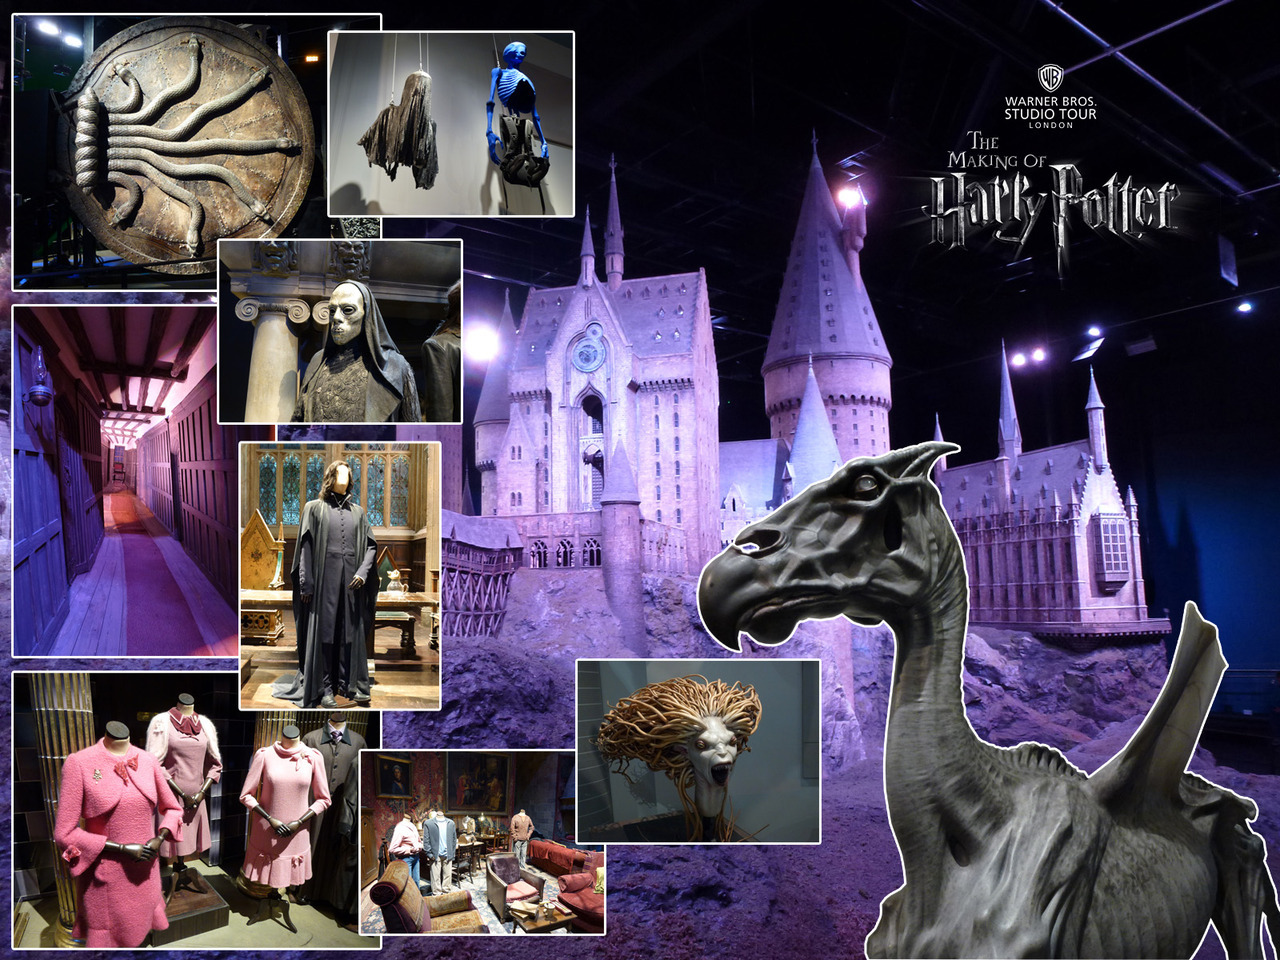 Photos from the Warner Bros Studio Tour - The Making of Harry Potter. Main: Breathtakingly huge 1:24 scale model of Hogwarts and grounds. Clockwise from top left: Fullsize Chamber of Secrets door with mechanical snakes. Dementor costume and bluescreen harness. Lifesize Thestral. Prosthetic mermaid head. The Gryffindor common room with principal cast third year costumes. Dolores Umbridge (Imelda Staunton)'s costumes from Order of the Phoenix. Severus Snape (Alan Rickman)'s costume. Forced perspective hallway set. Death Eater costume and mask.